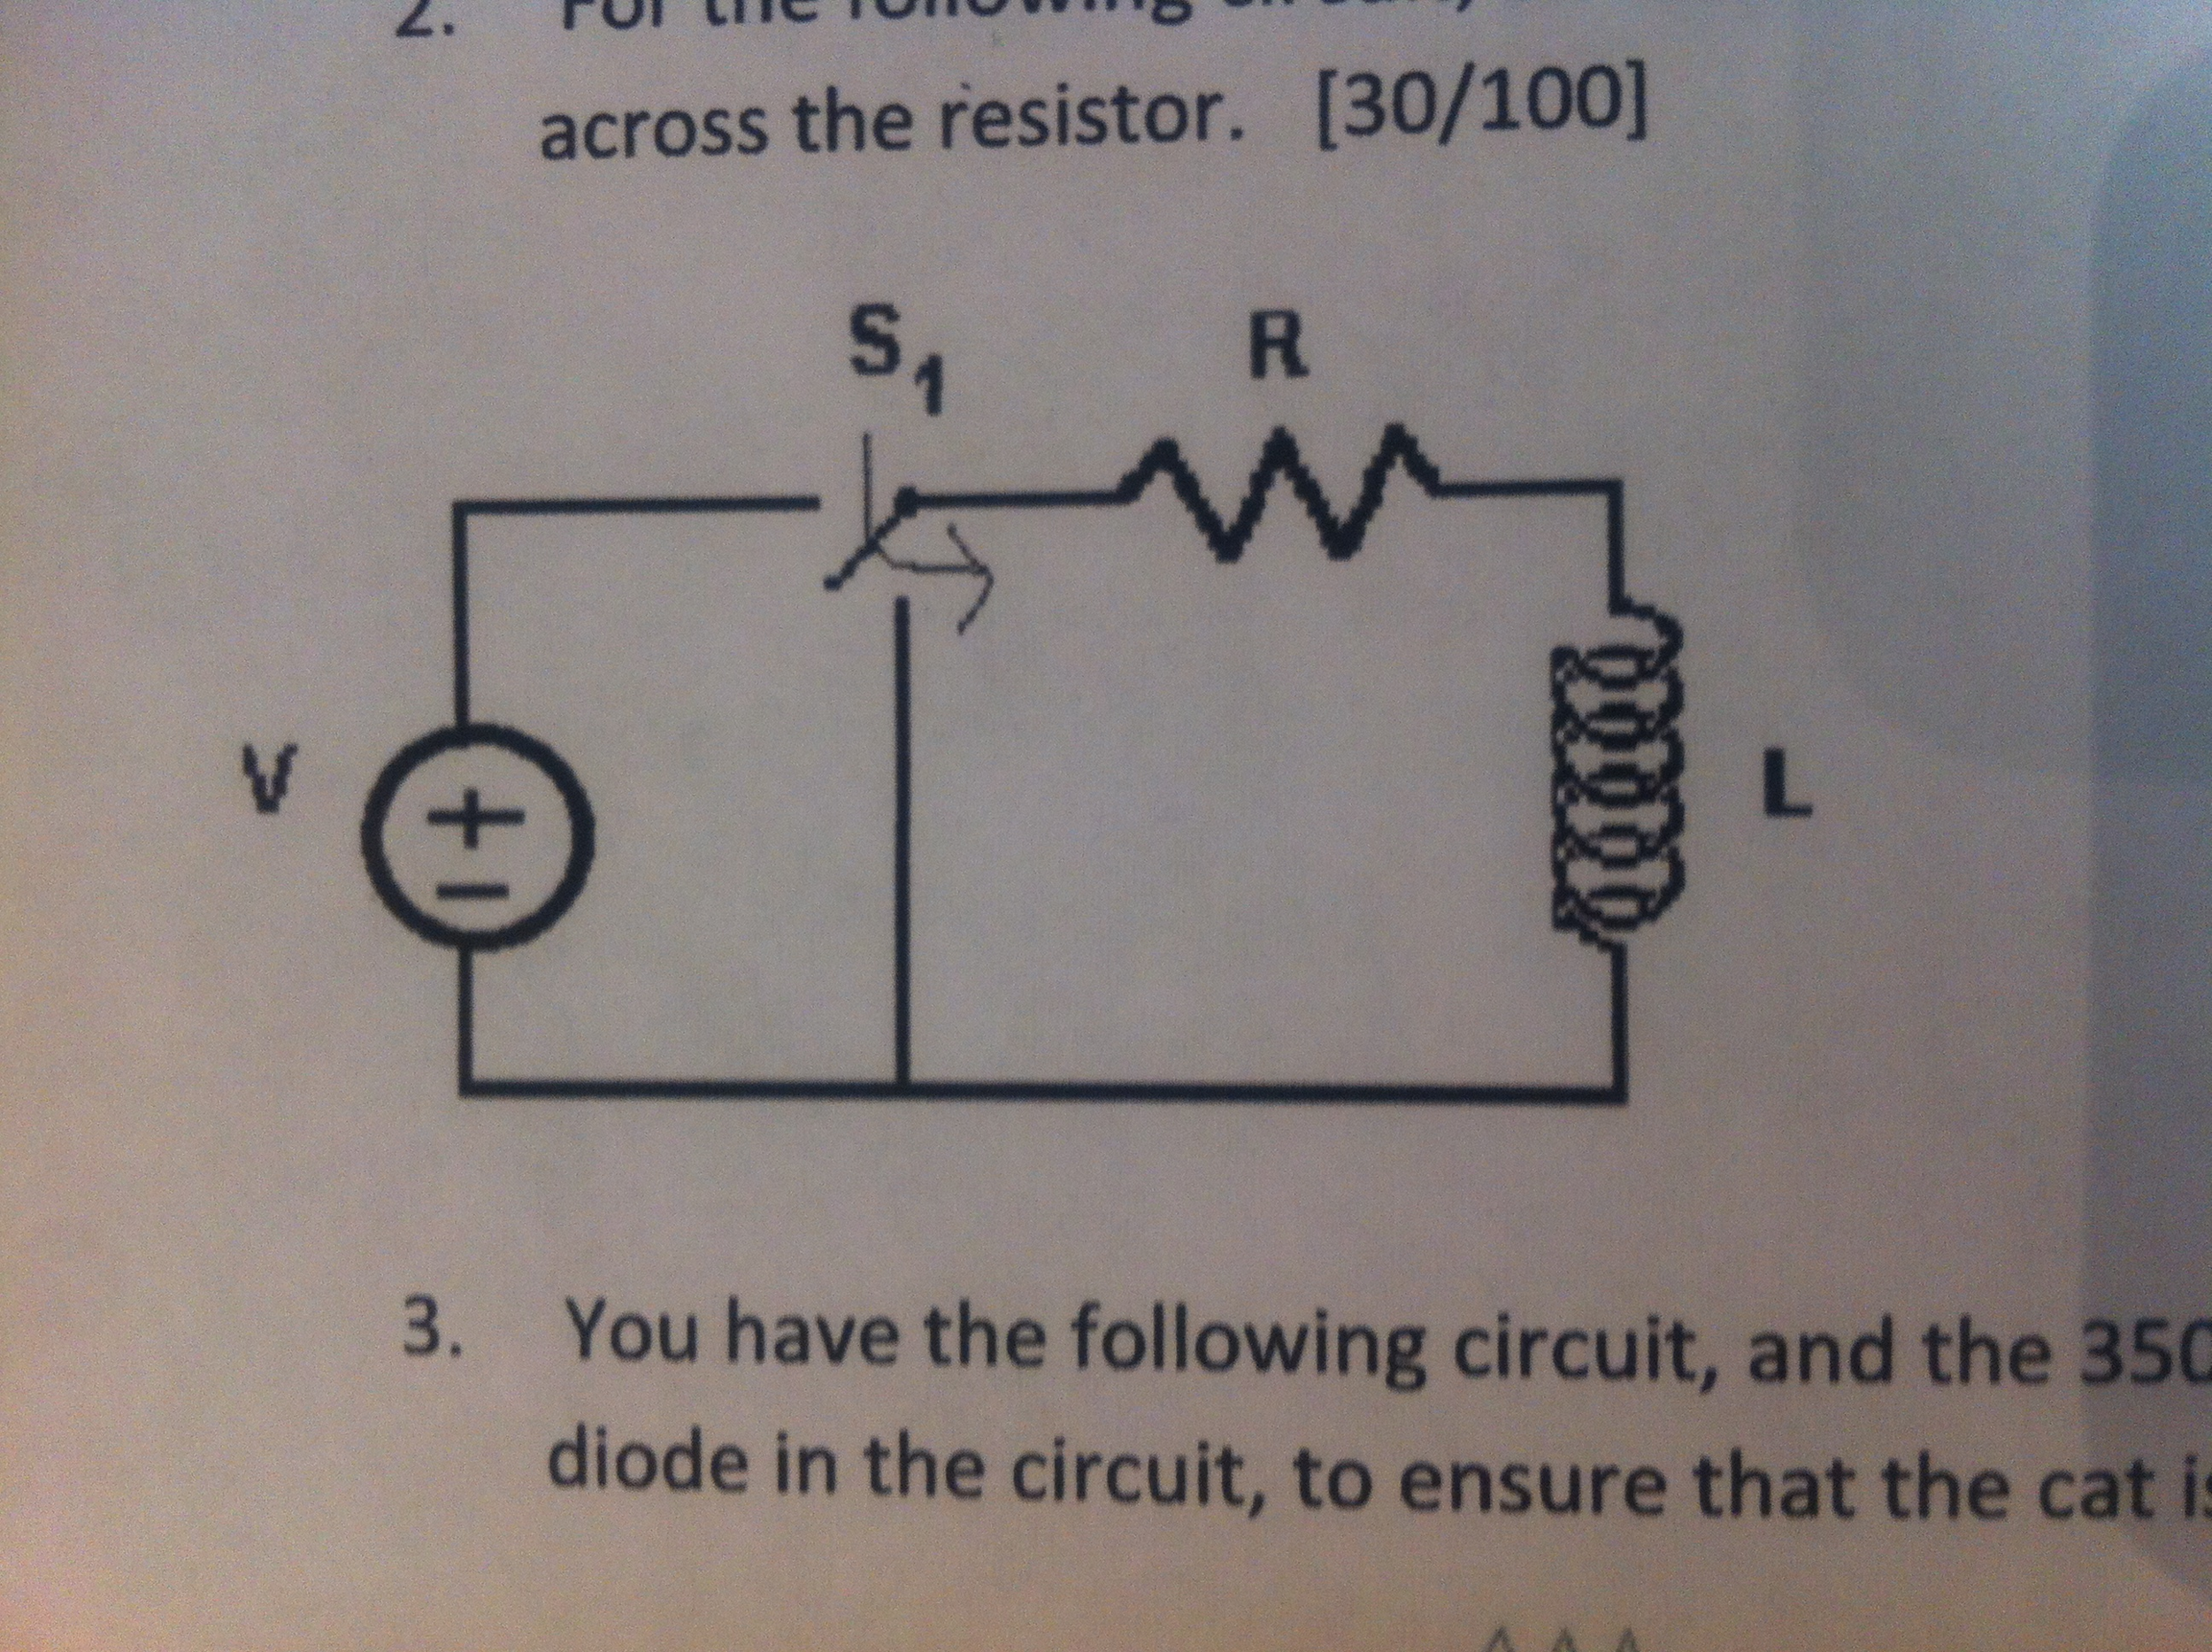 across the resistor. You have the following circu